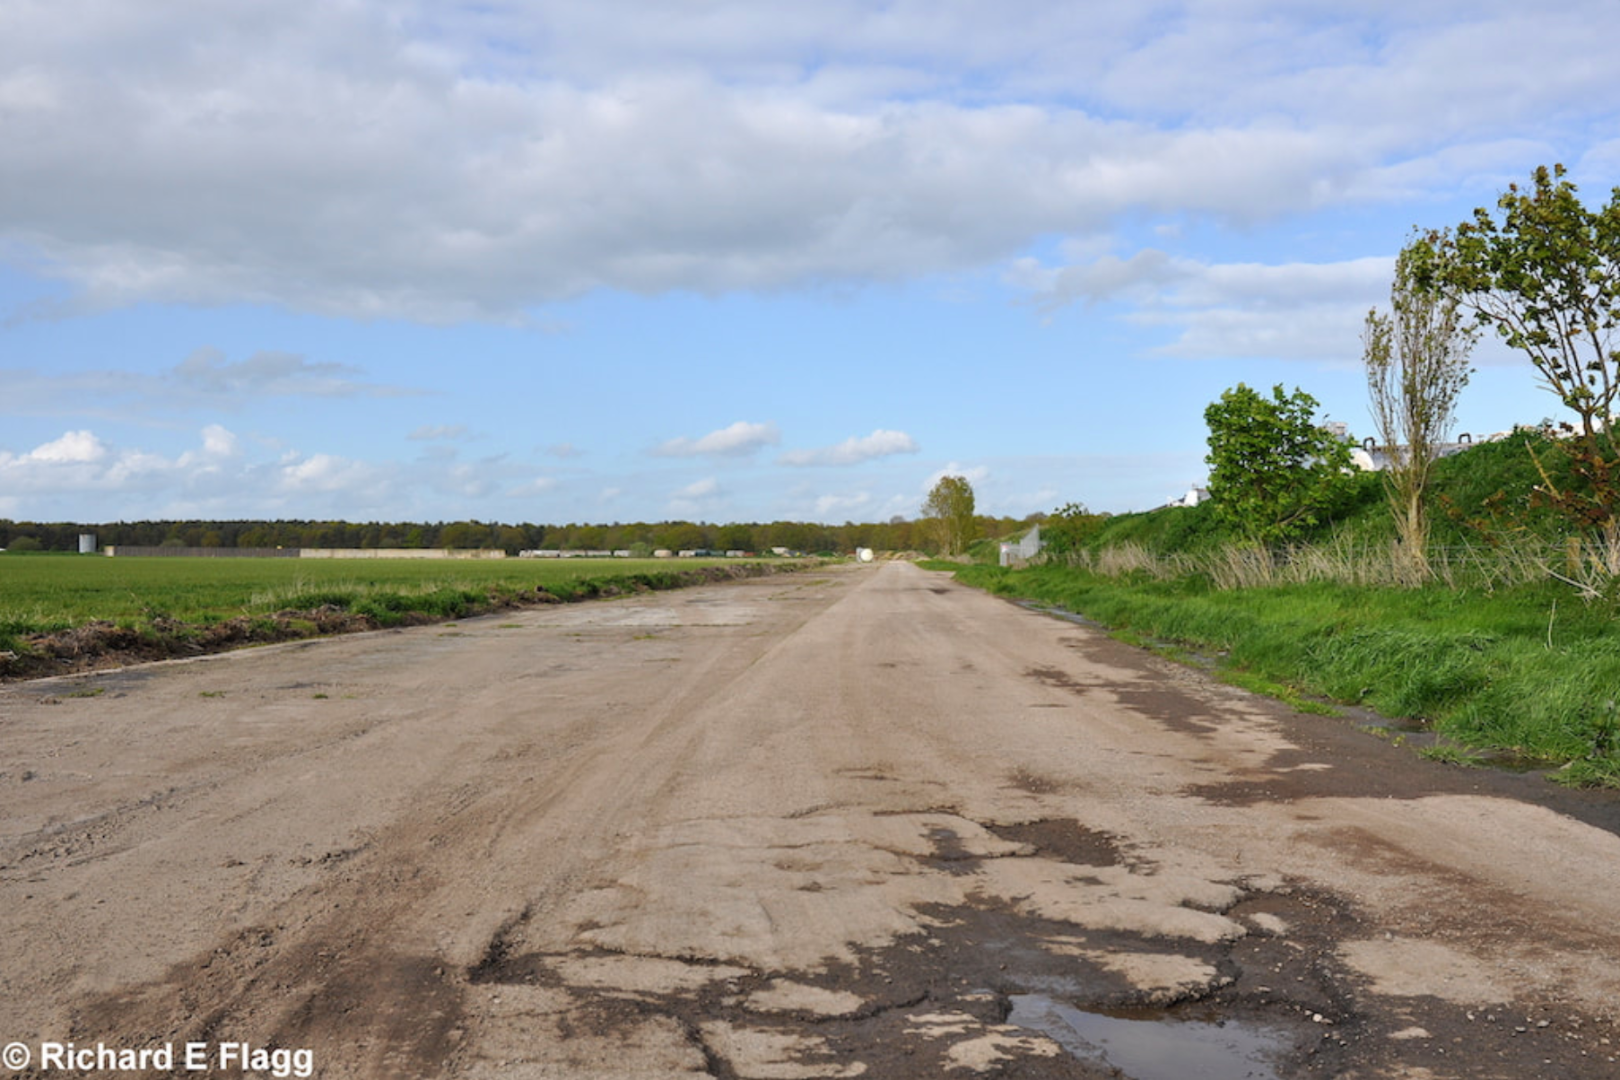 004Taxiway at the south of the airfield. Looking north east from near the control tower - 15 May 2012.png